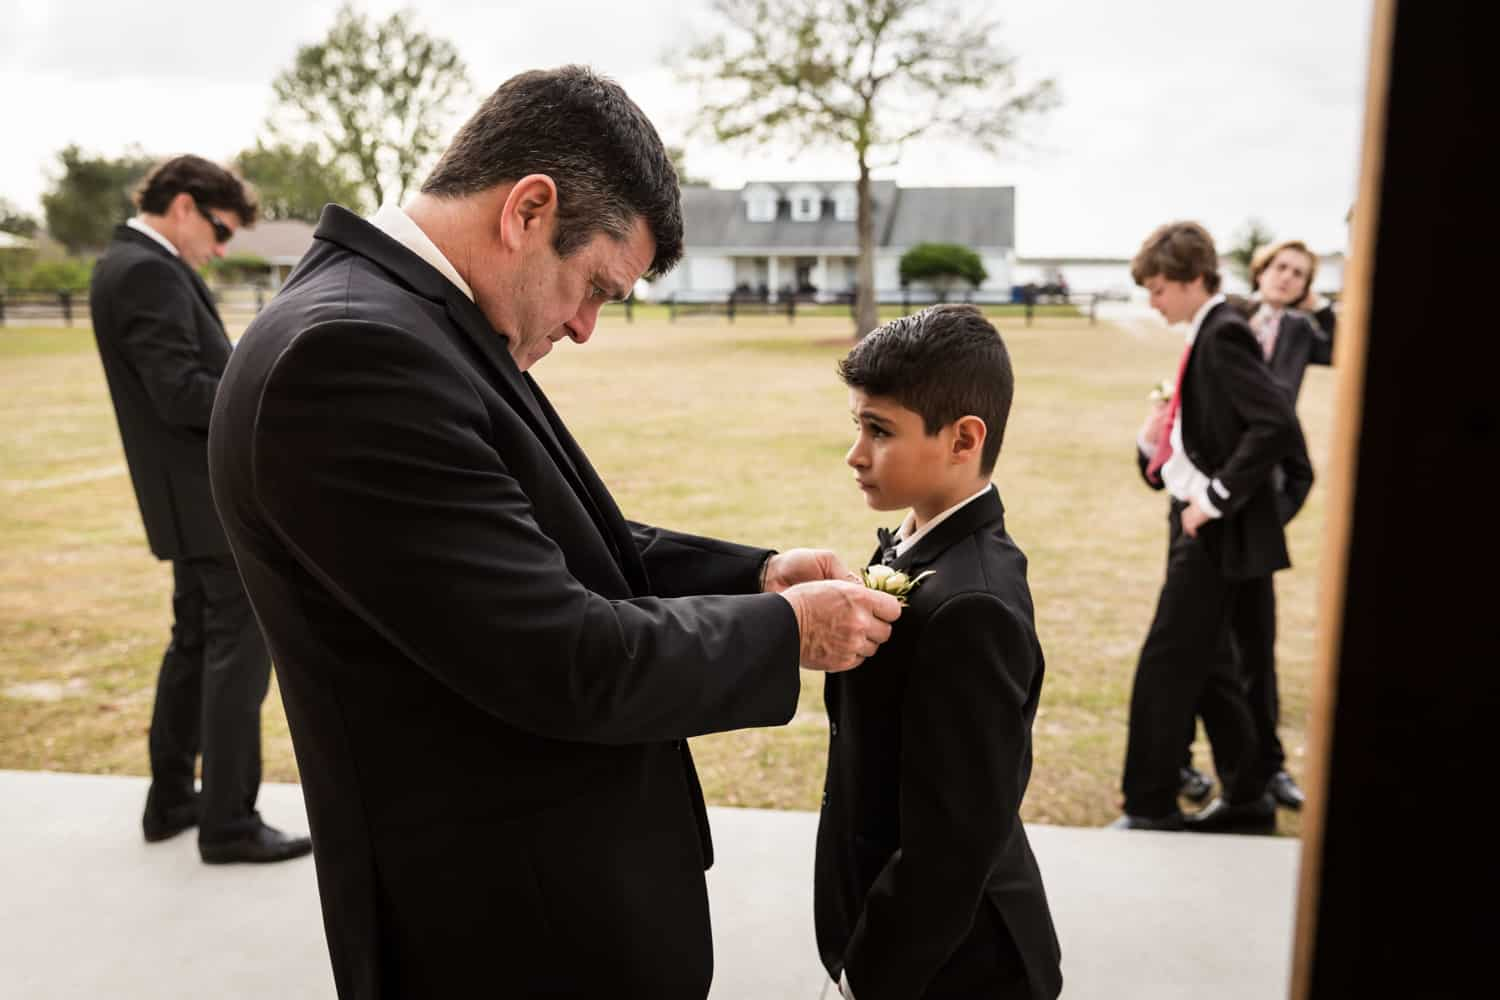 Groom adjusting the handkerchief of young boy for an article on wedding cost cutting tips